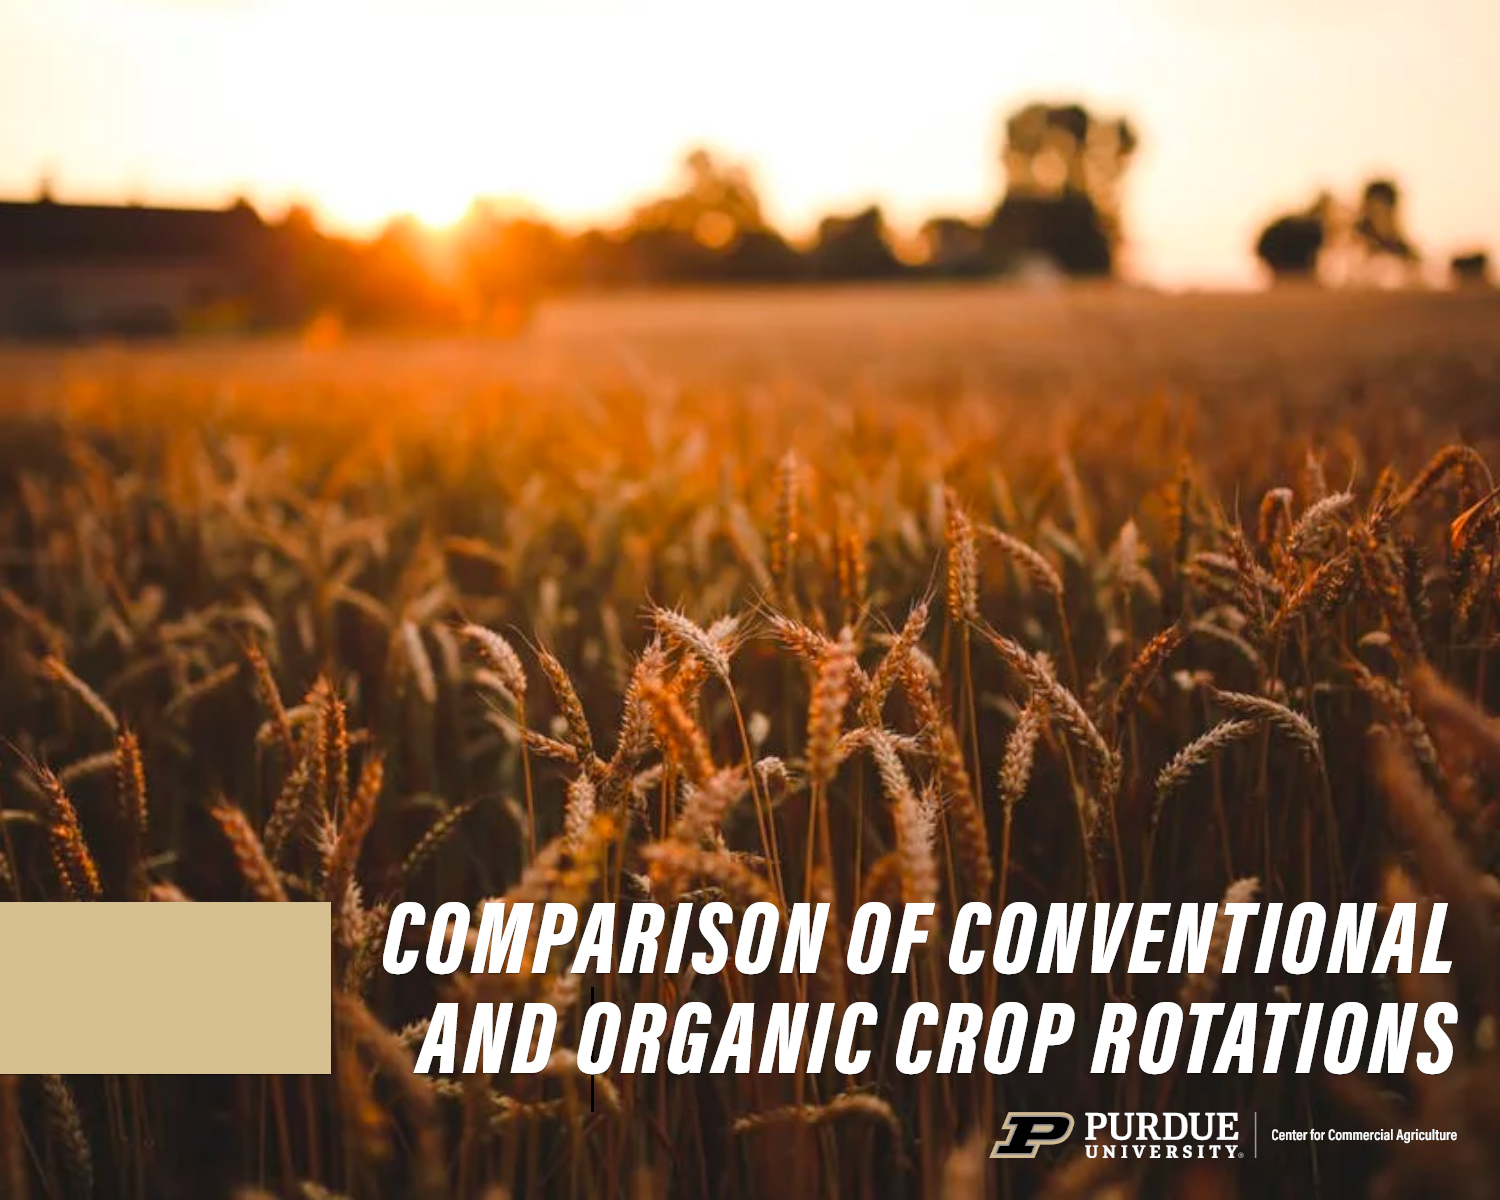 202006_LangemeierFang_ComparisonofConventionalandOrganicCropRotations_Featured